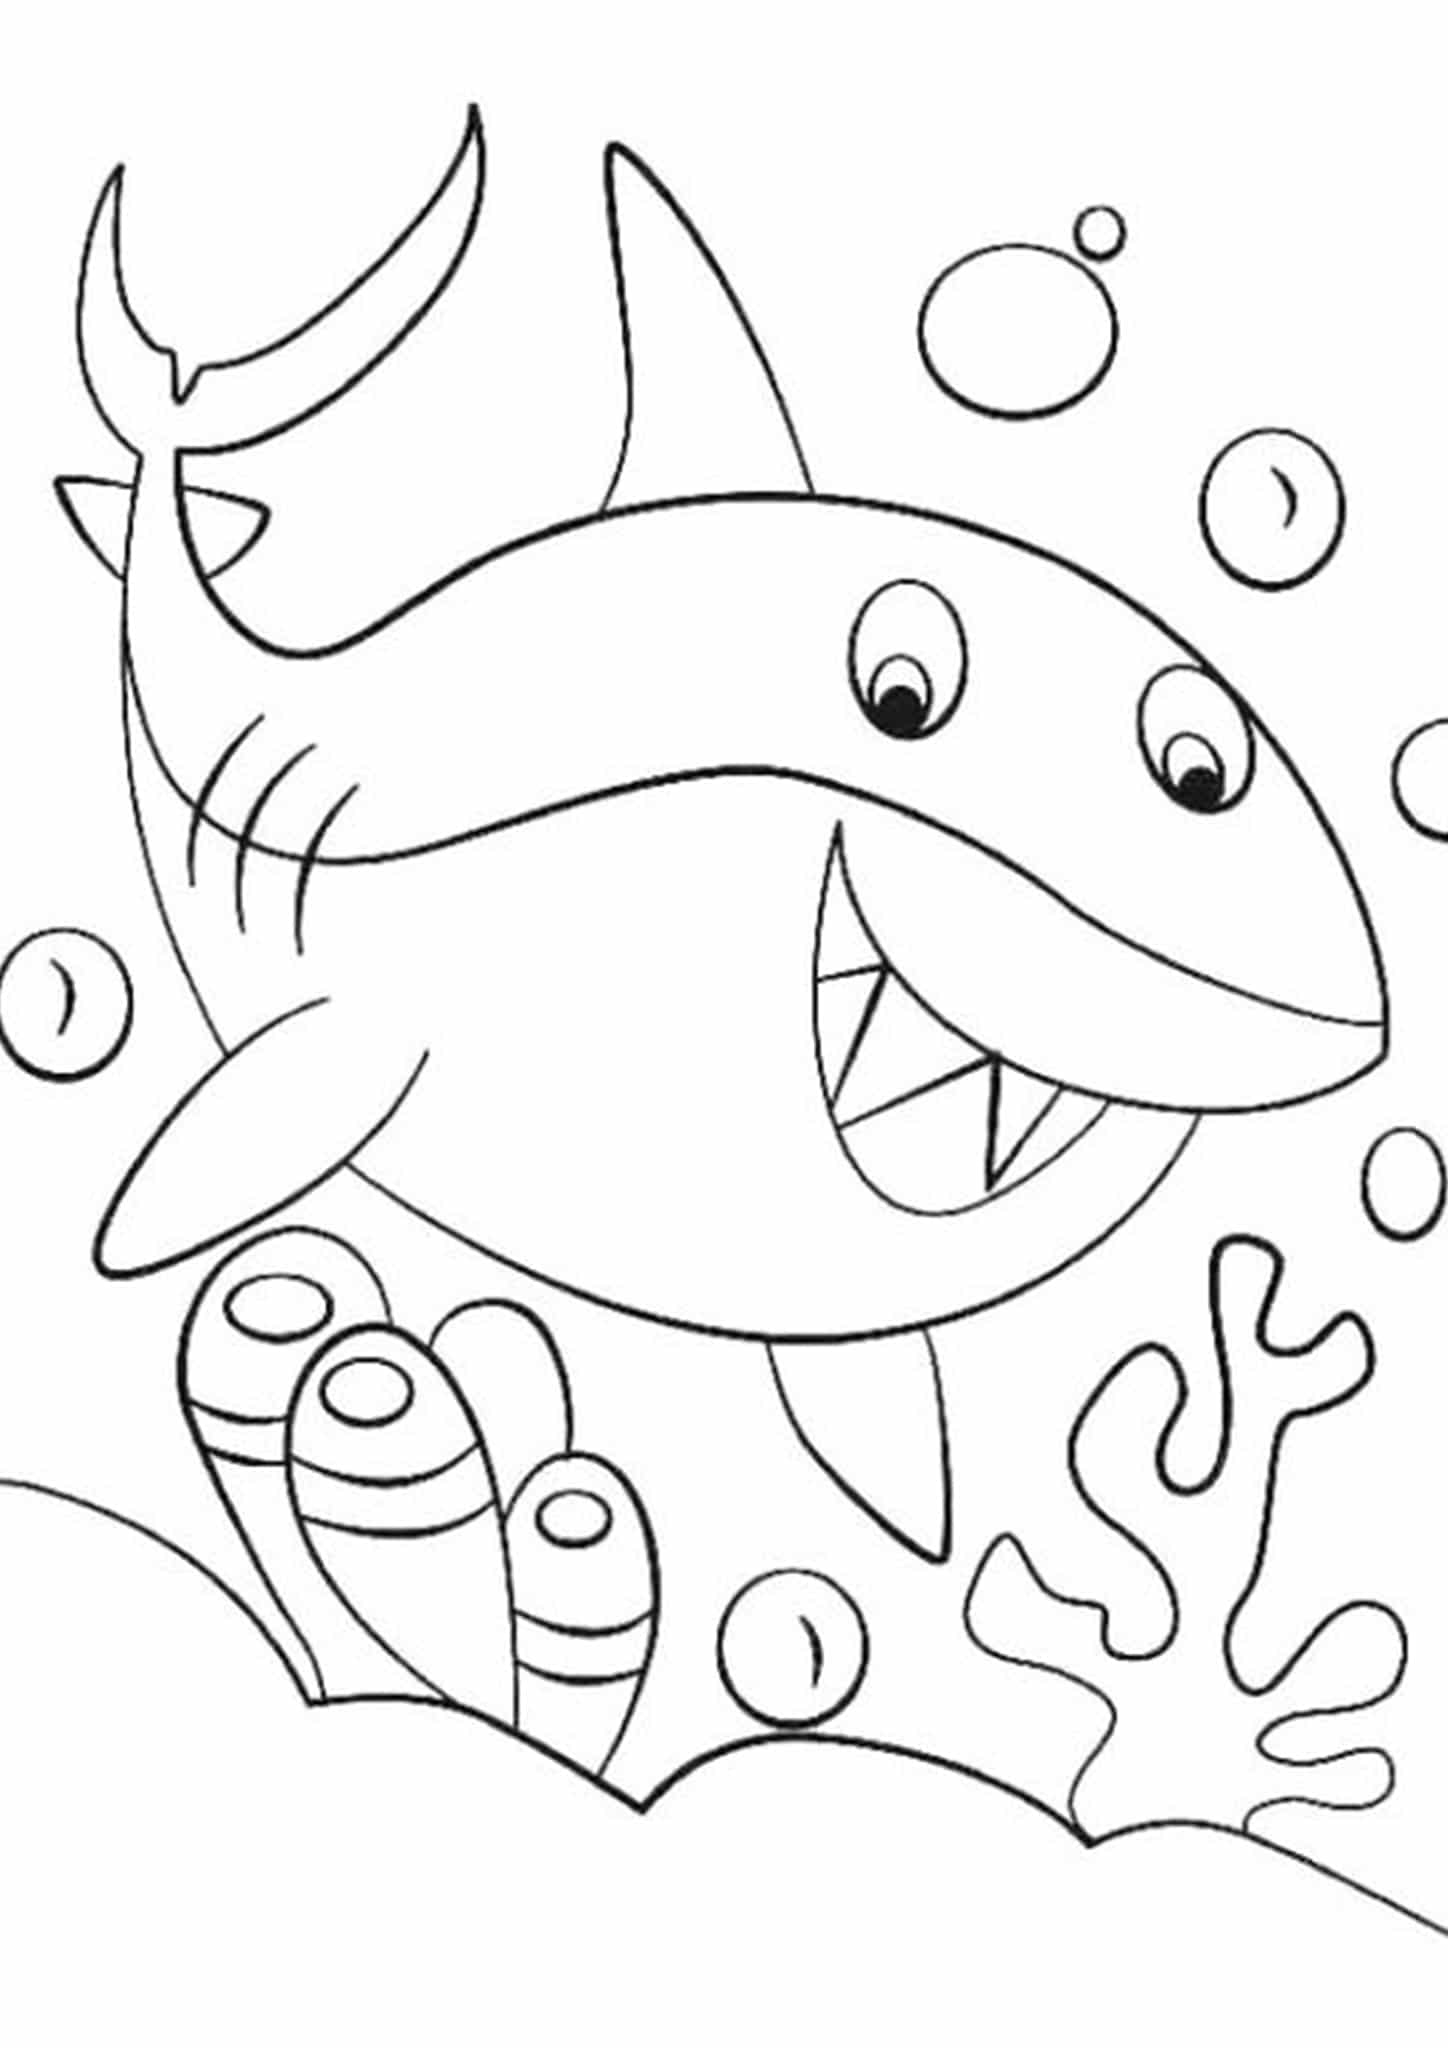 printable shark pictures hammerhead shark coloring pages to print pictures printable shark